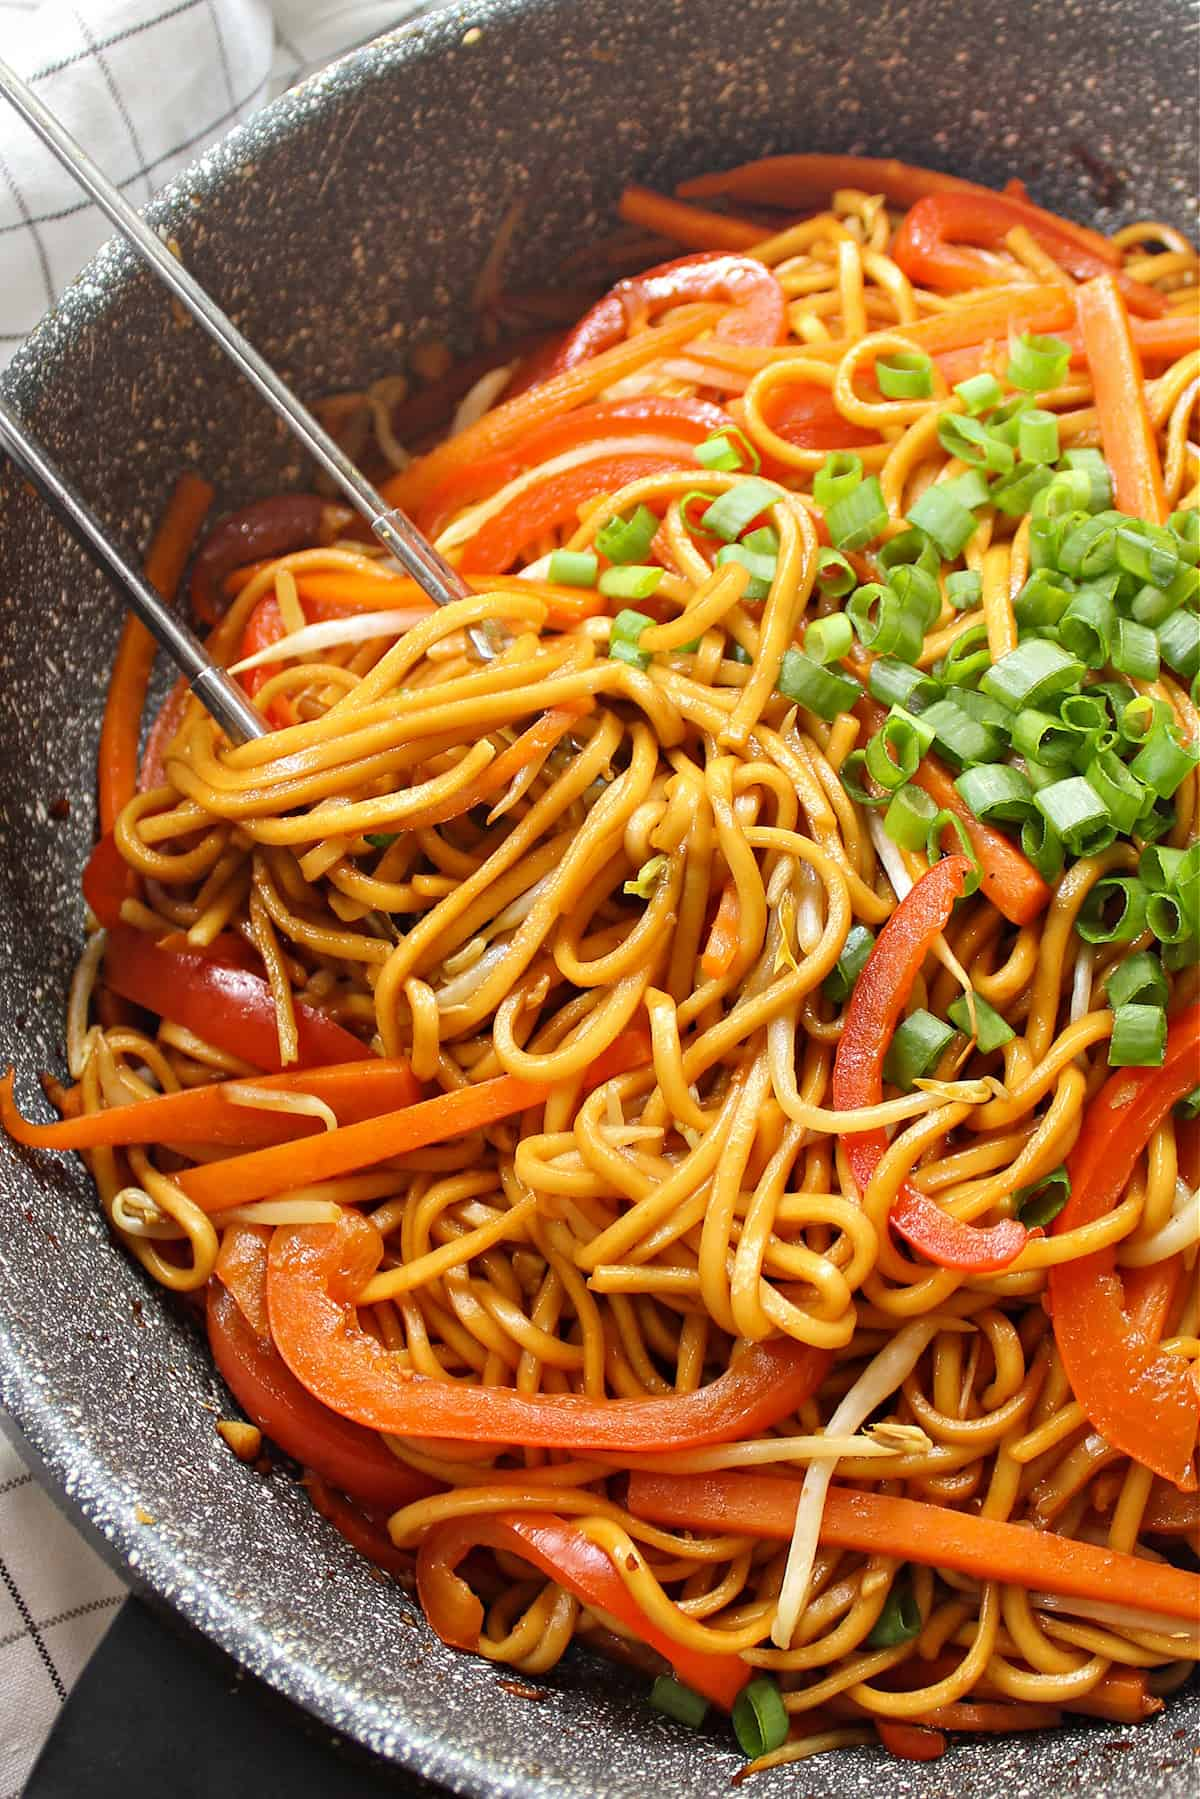 Closeup view of lo mein in a wok.